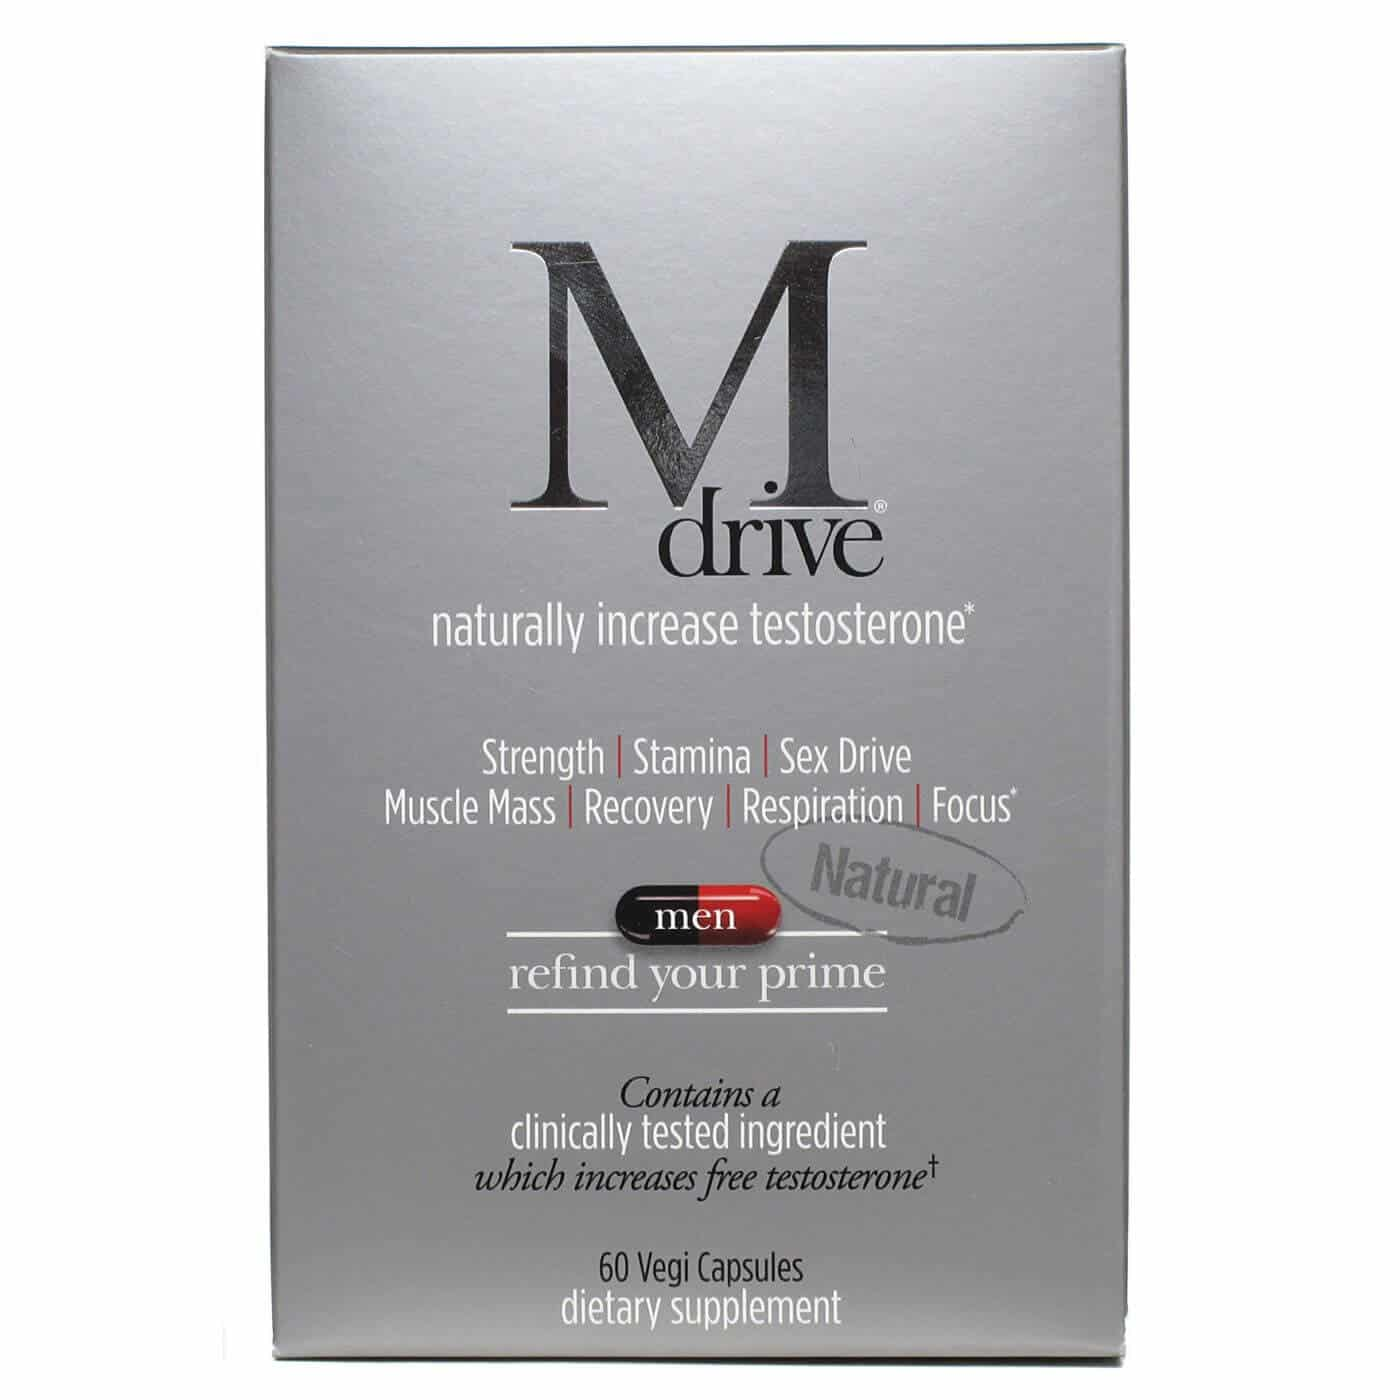 M Drive Ingredients